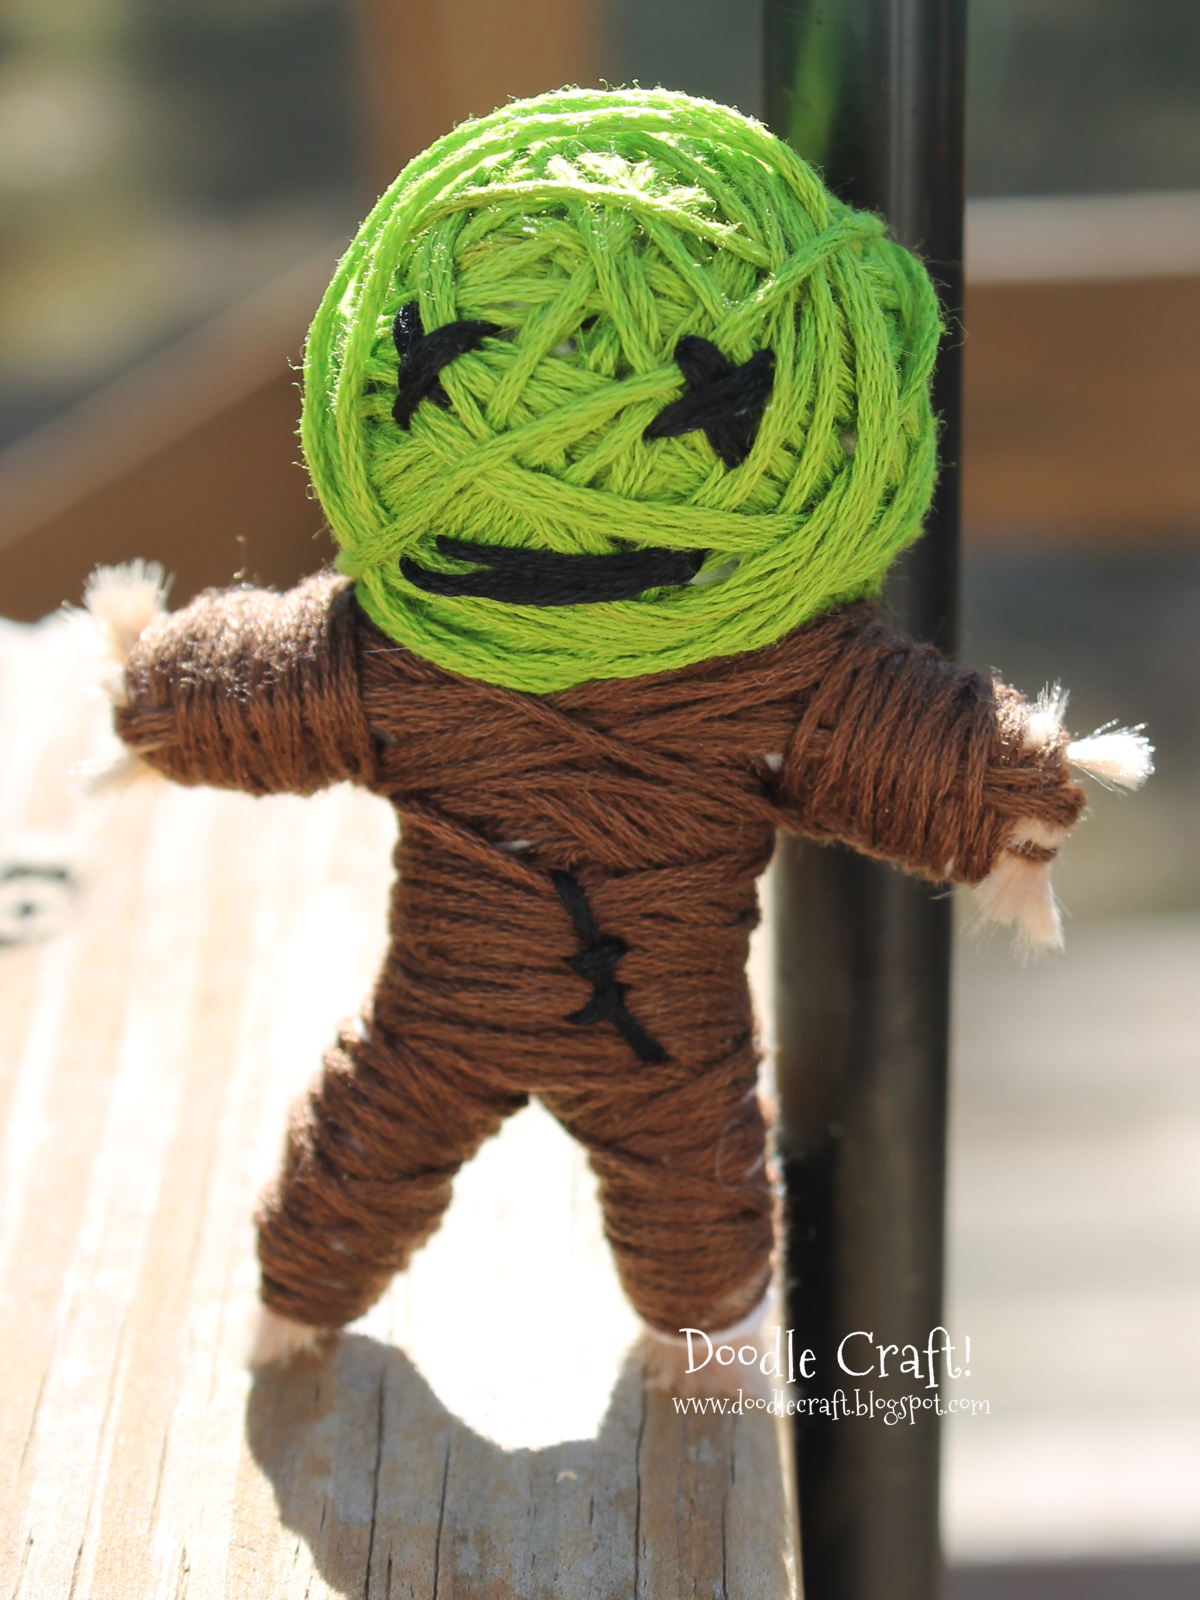 Doodlecraft Make Your Own String Voodoo Dolls